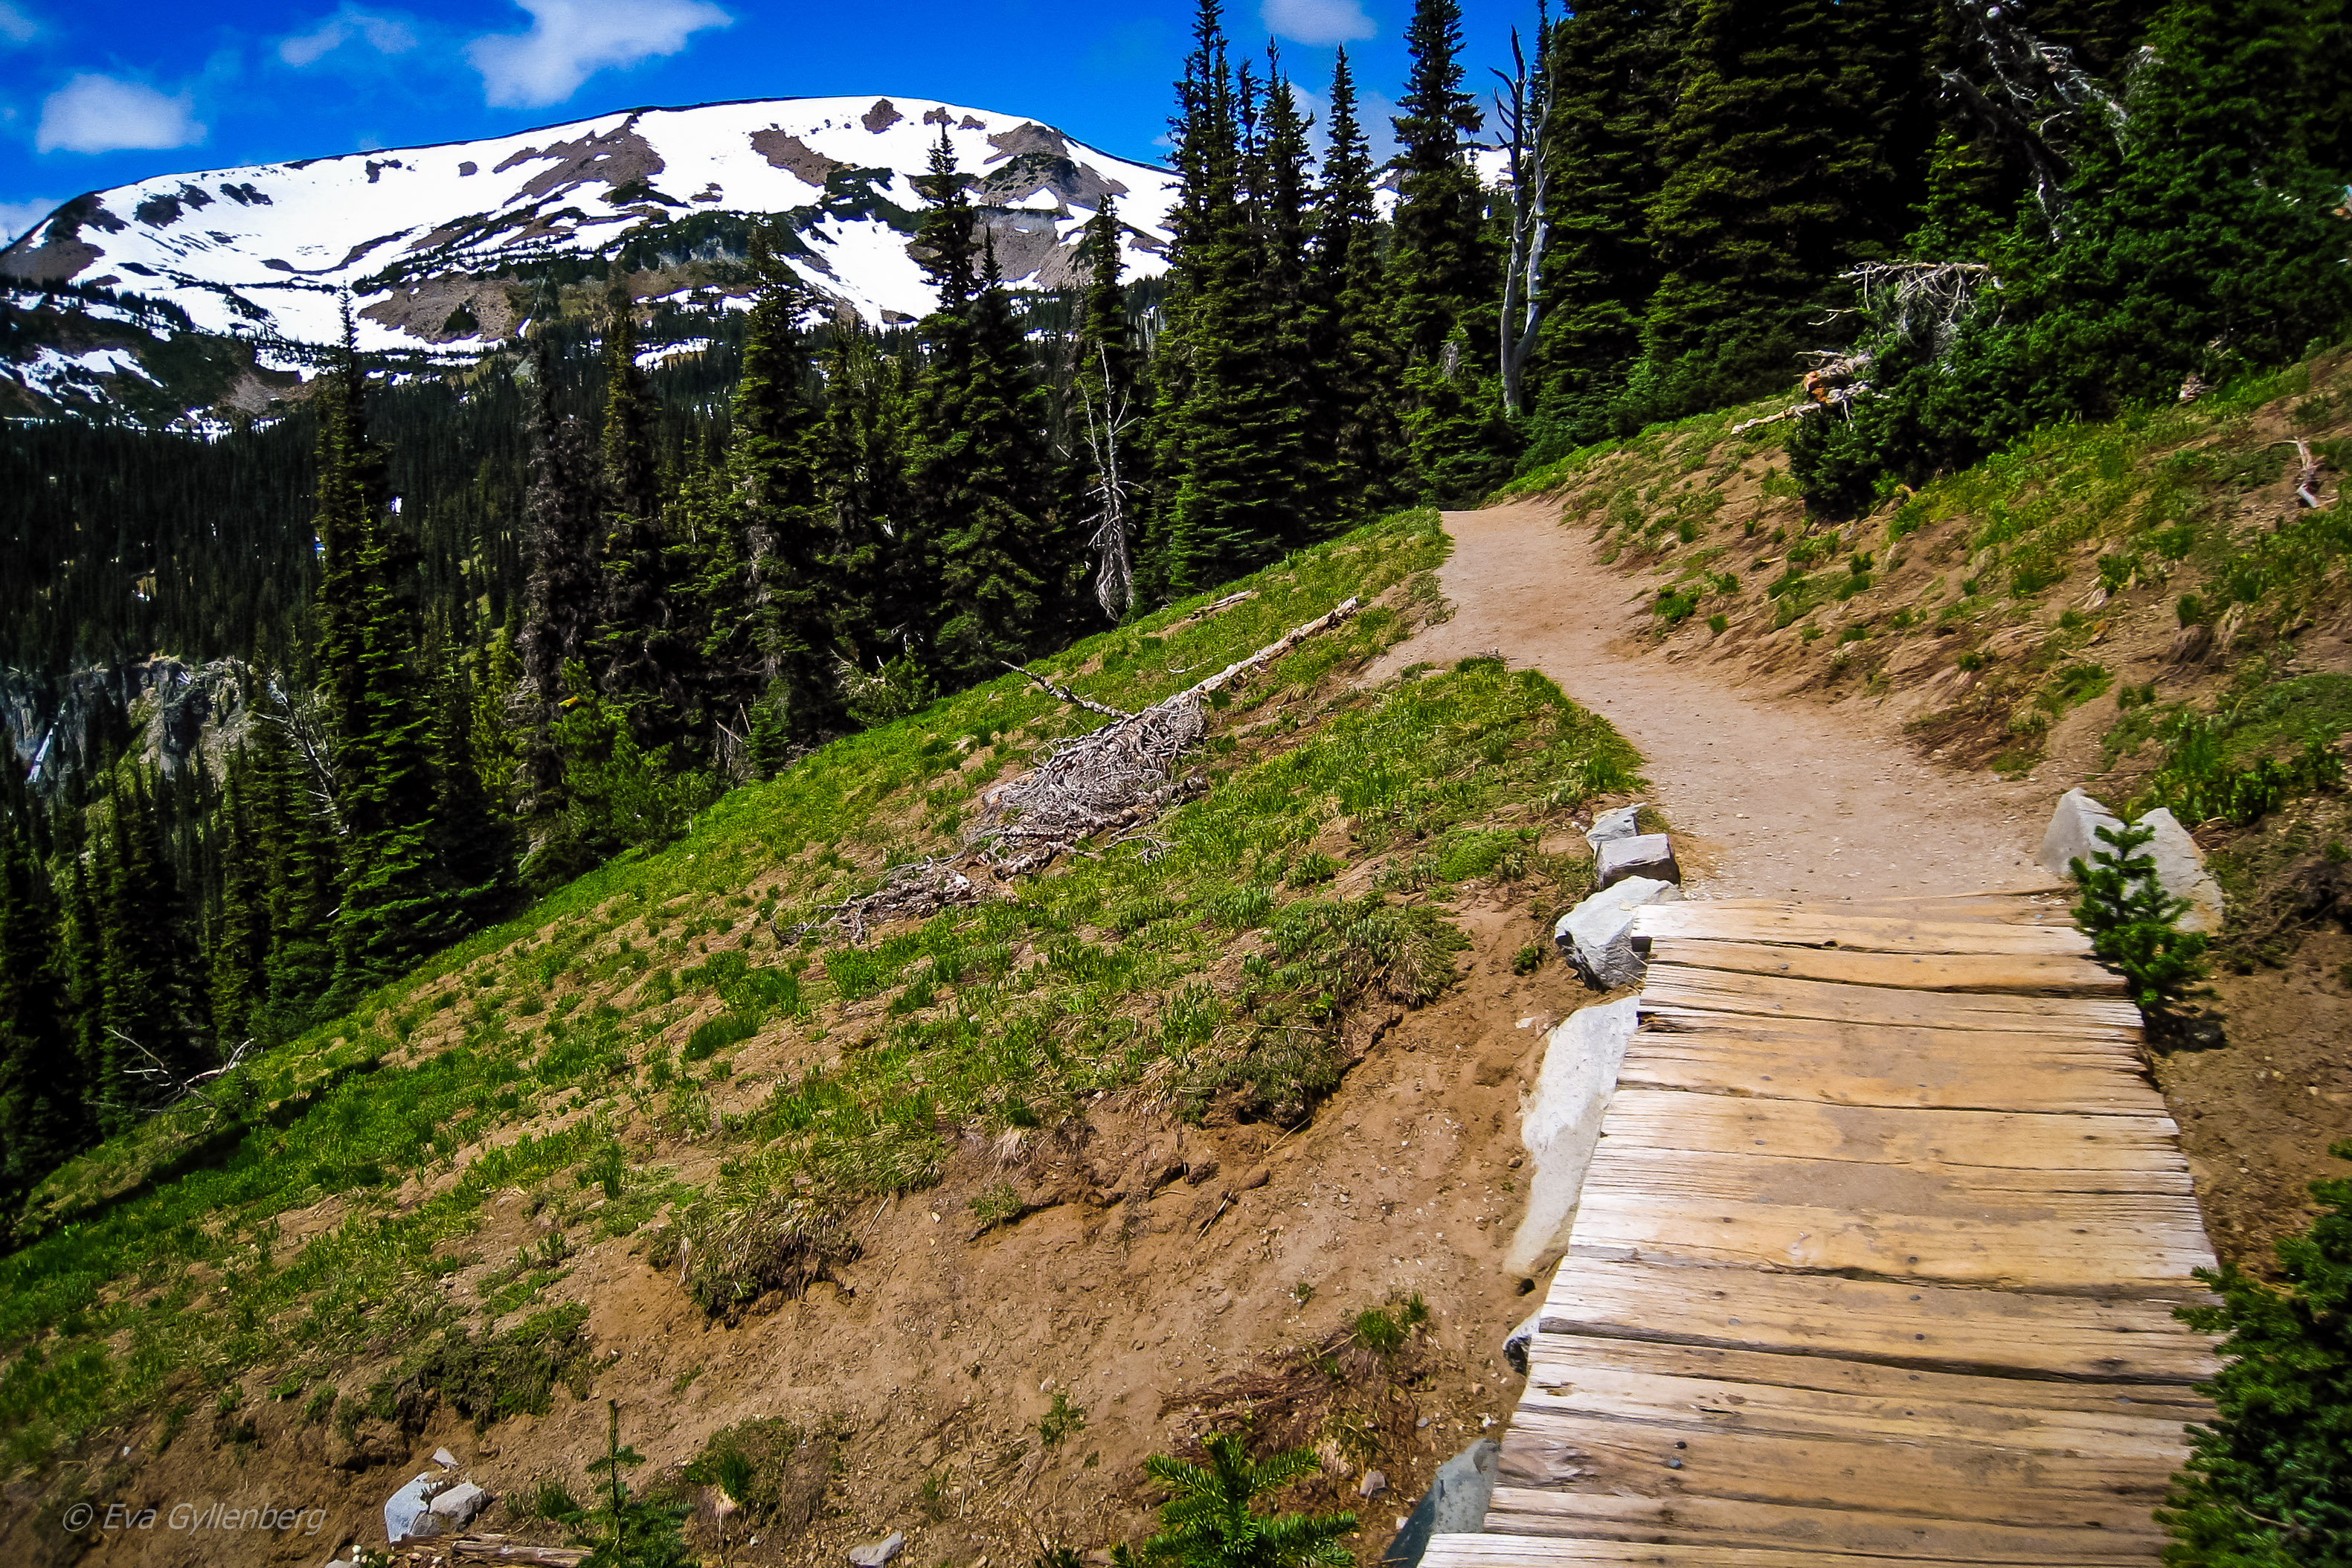 Vandring i Mount Rainier- Washington